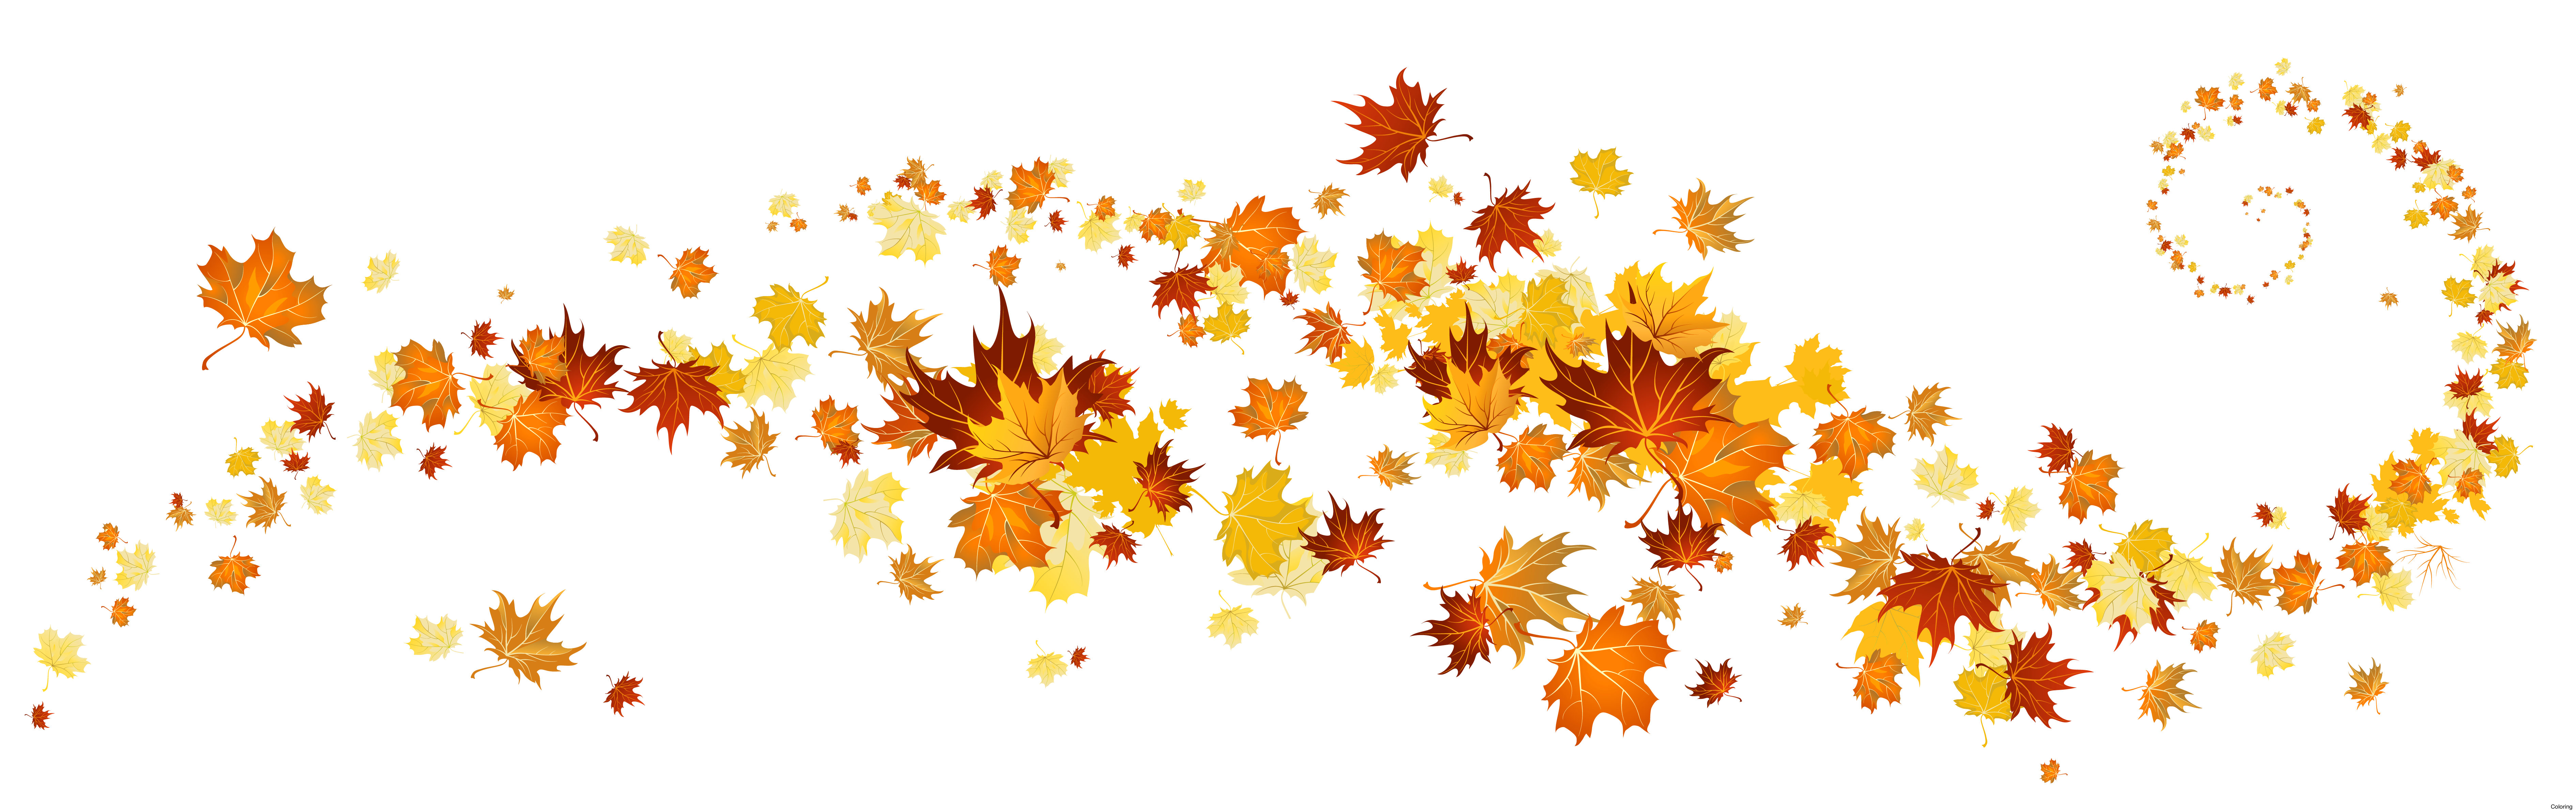 Free clipart autumn leaves. Fall images gallery for